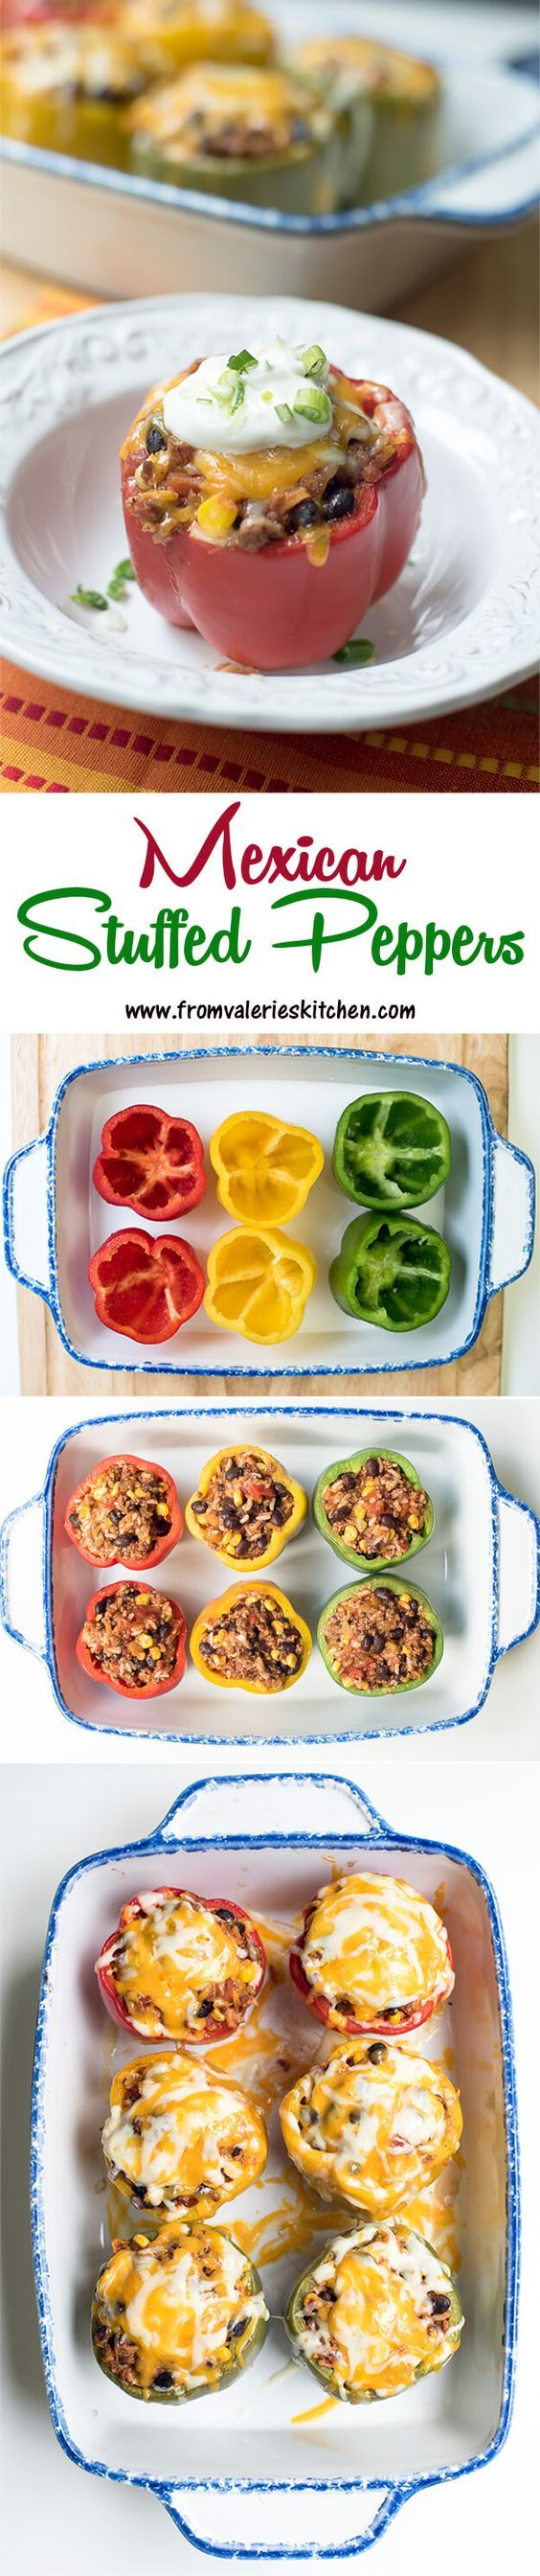 A Mexican twist on stuffed bell peppers. This filling is insanely good! ~ http://www.fromvalerieskitchen.com: